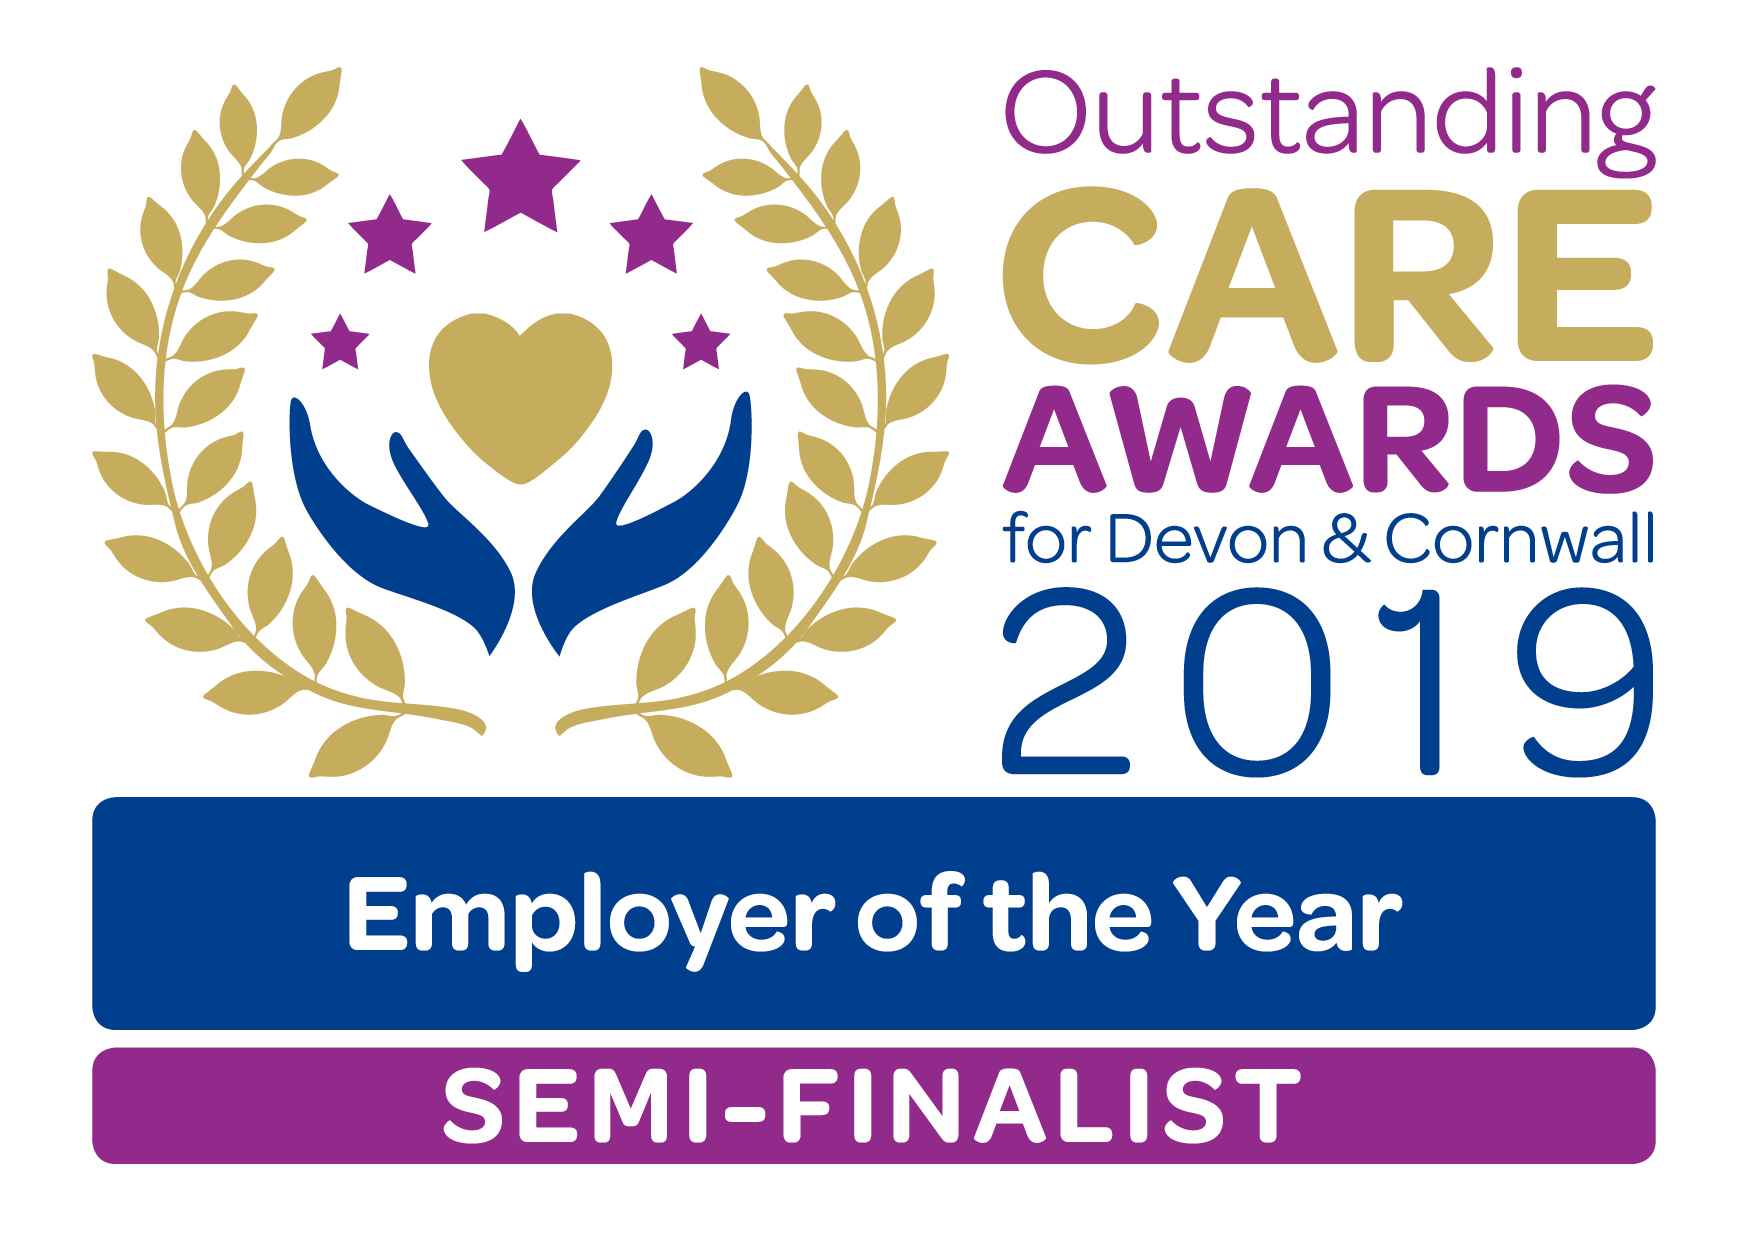 Outstanding Care Awards Supplier of the year and Employer of the Year Semi-finalists 2019